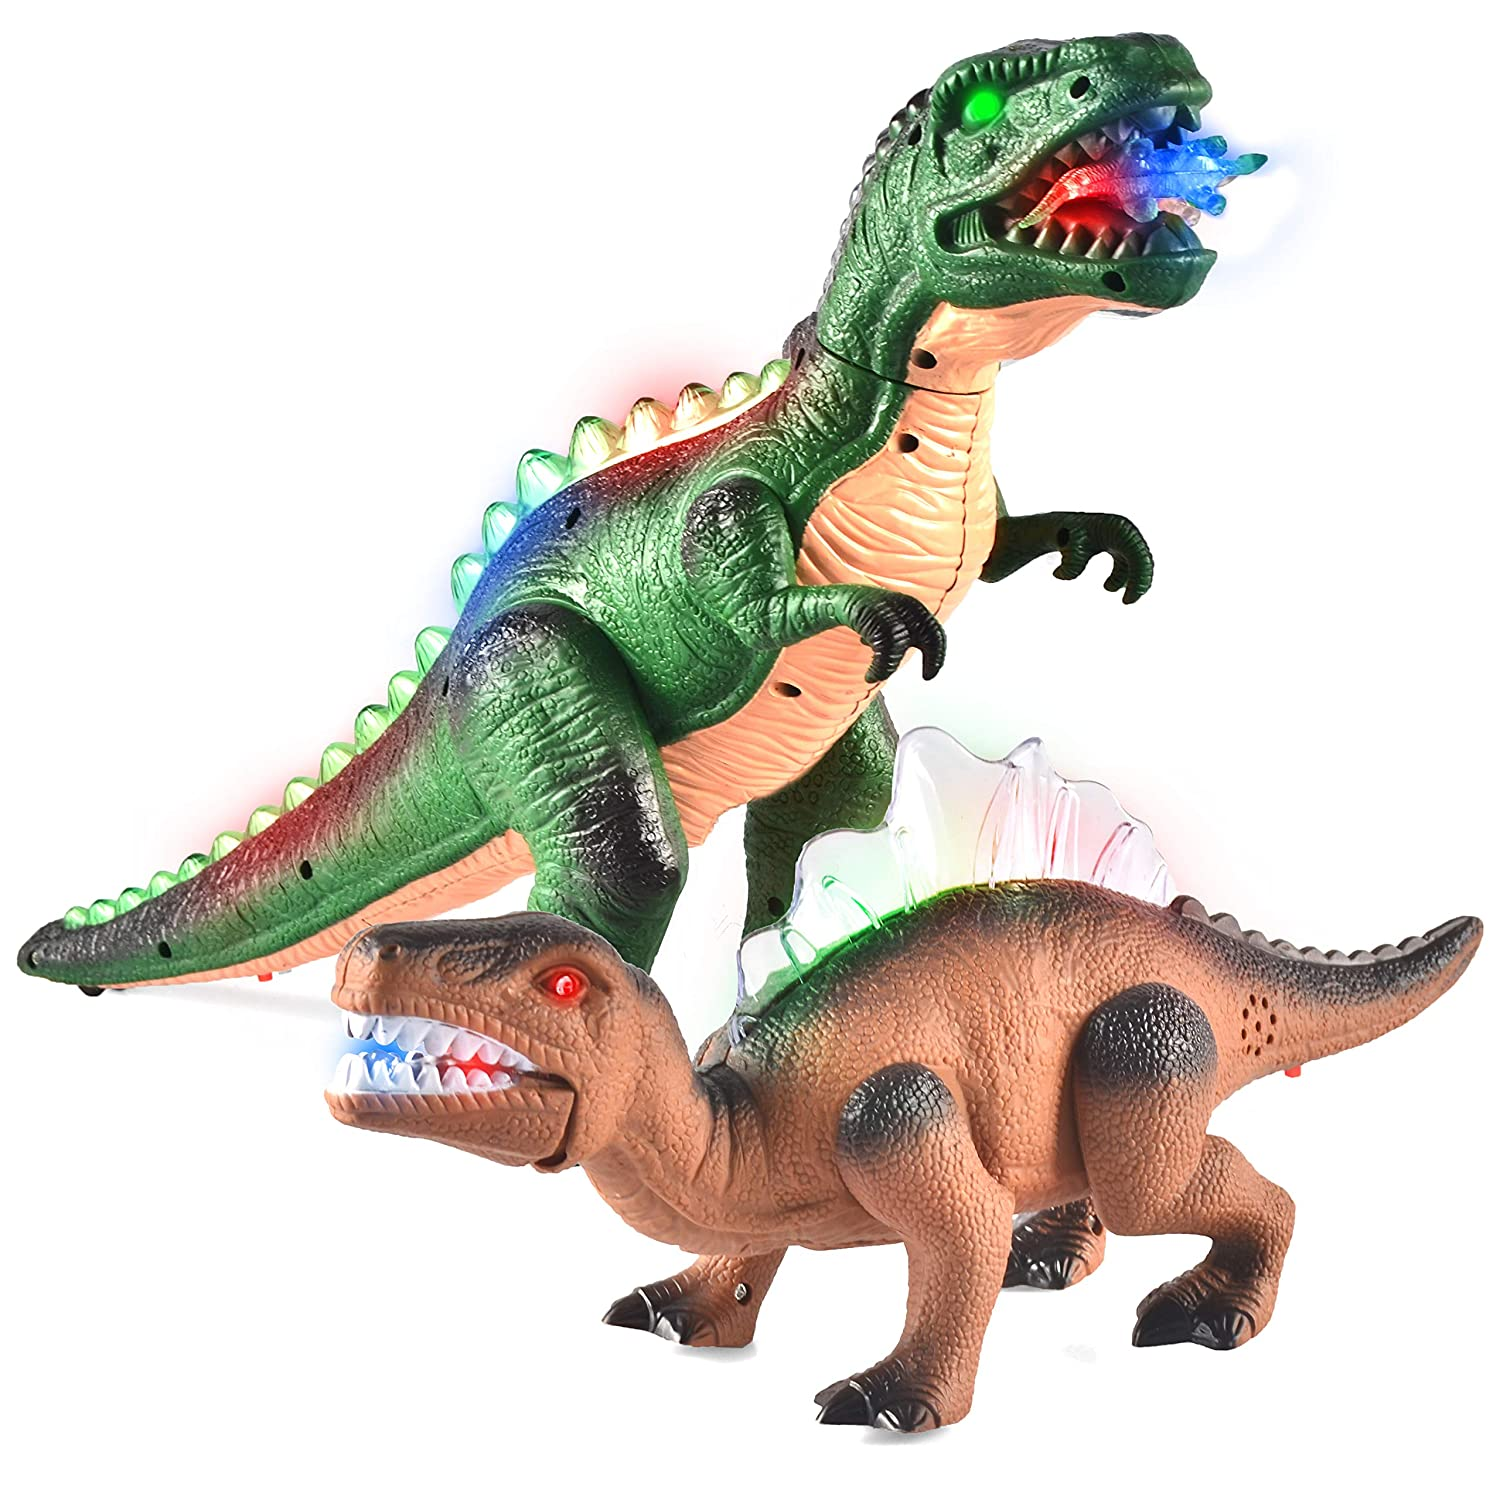 JOYIN 2 Pack LED Light Up T Rex Walking Realistic Dinosaur Toy with LED Light and Roaring Sound